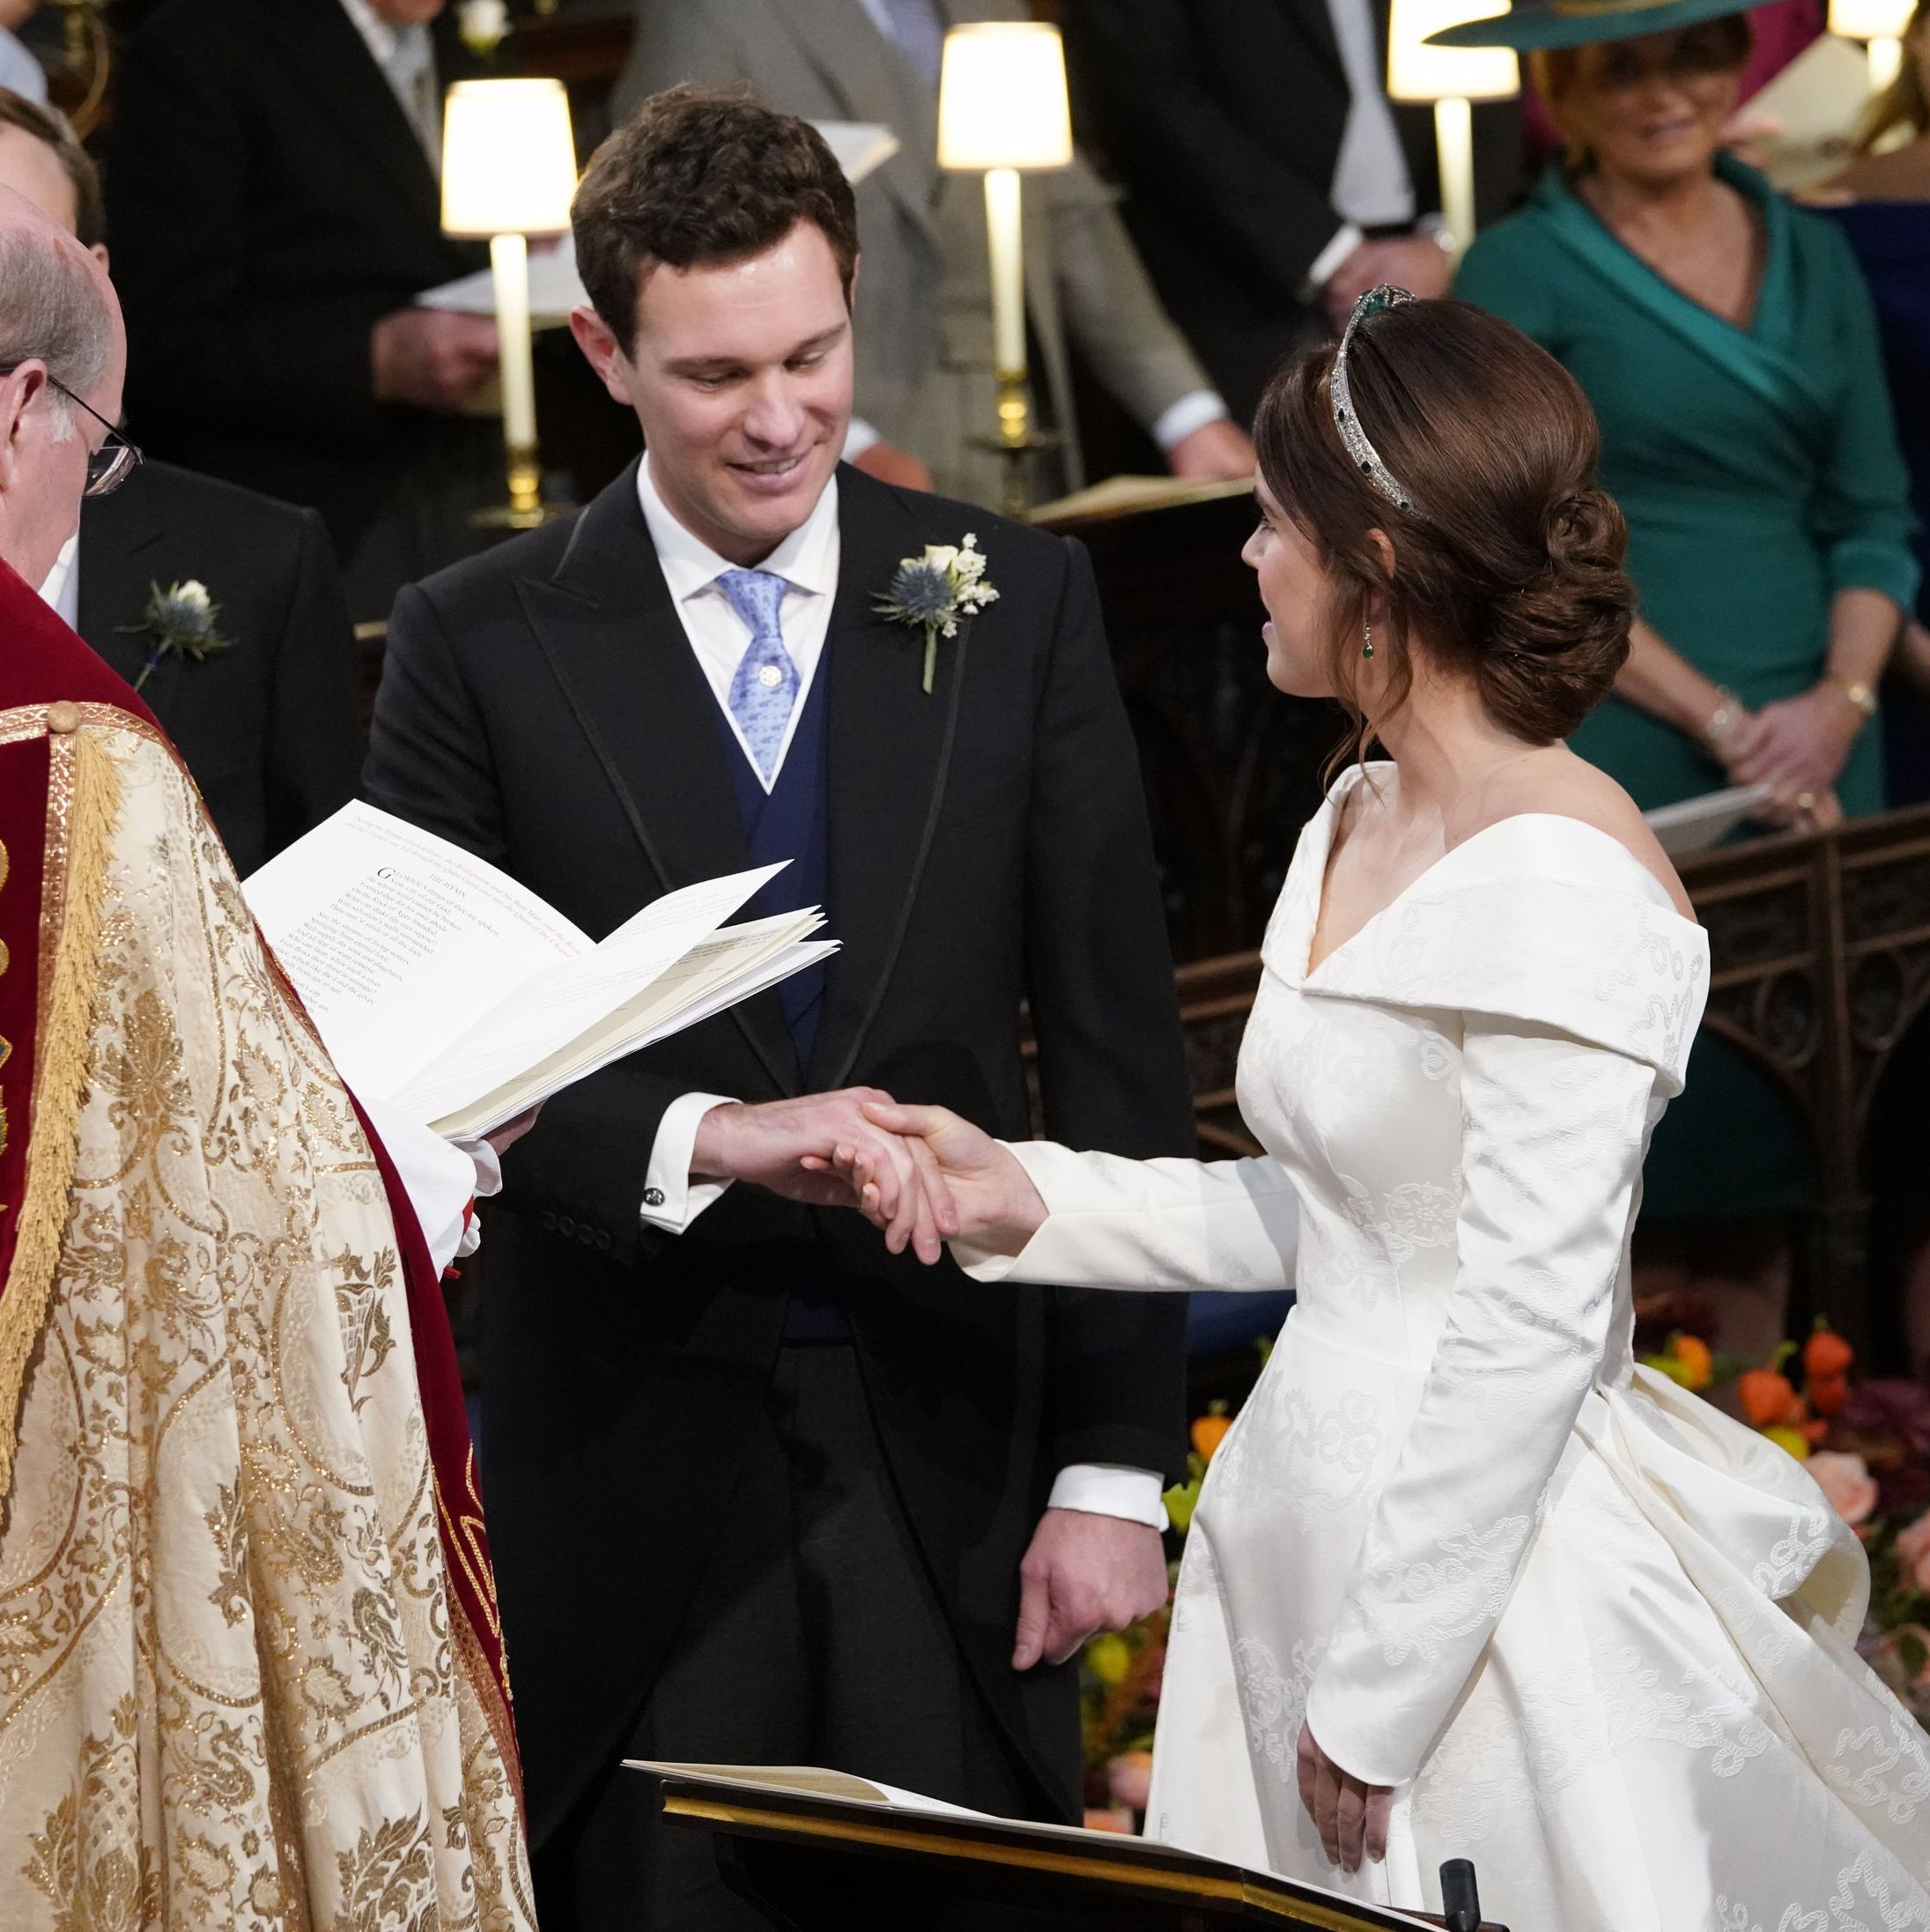 The Adorable Moment Jack Brooksbank Saw Princess Eugenie in Her Wedding Dress